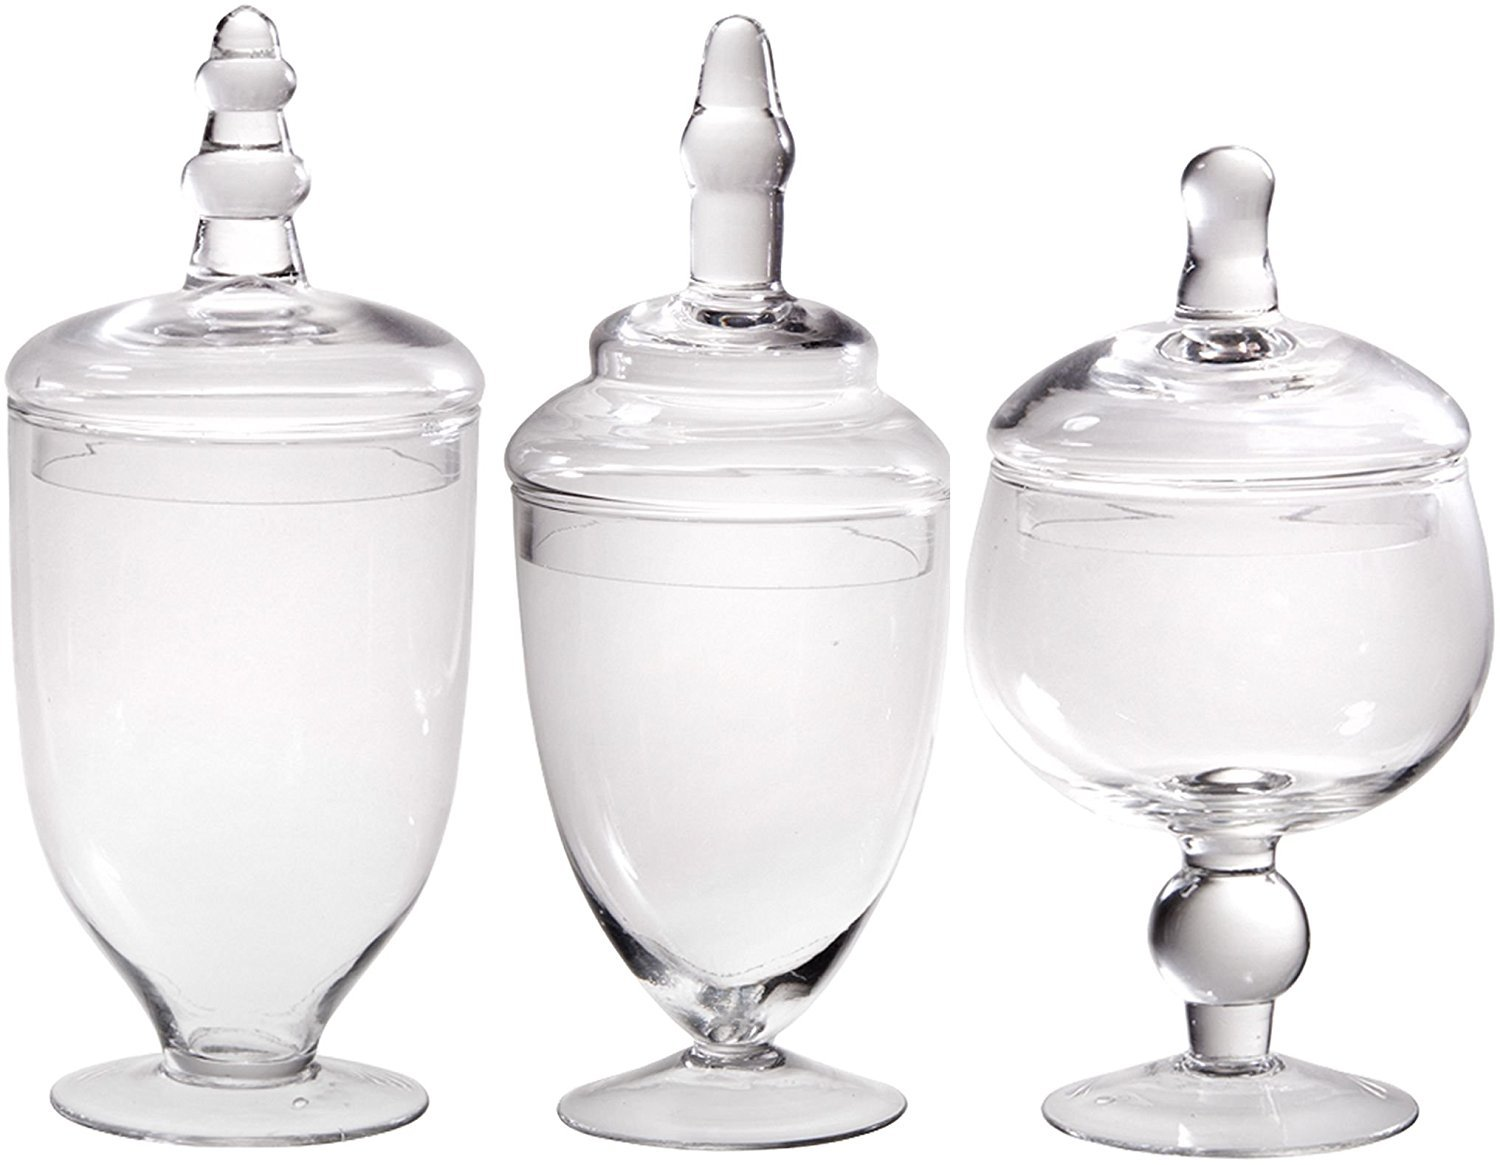 e31e467a0989 James Scott Set of 3 Glass Apothecary Jars with Lid - High Glass Canister -  Home Decor & Party Wedding Centerpiece, Candy Storage Bottles Terra ...